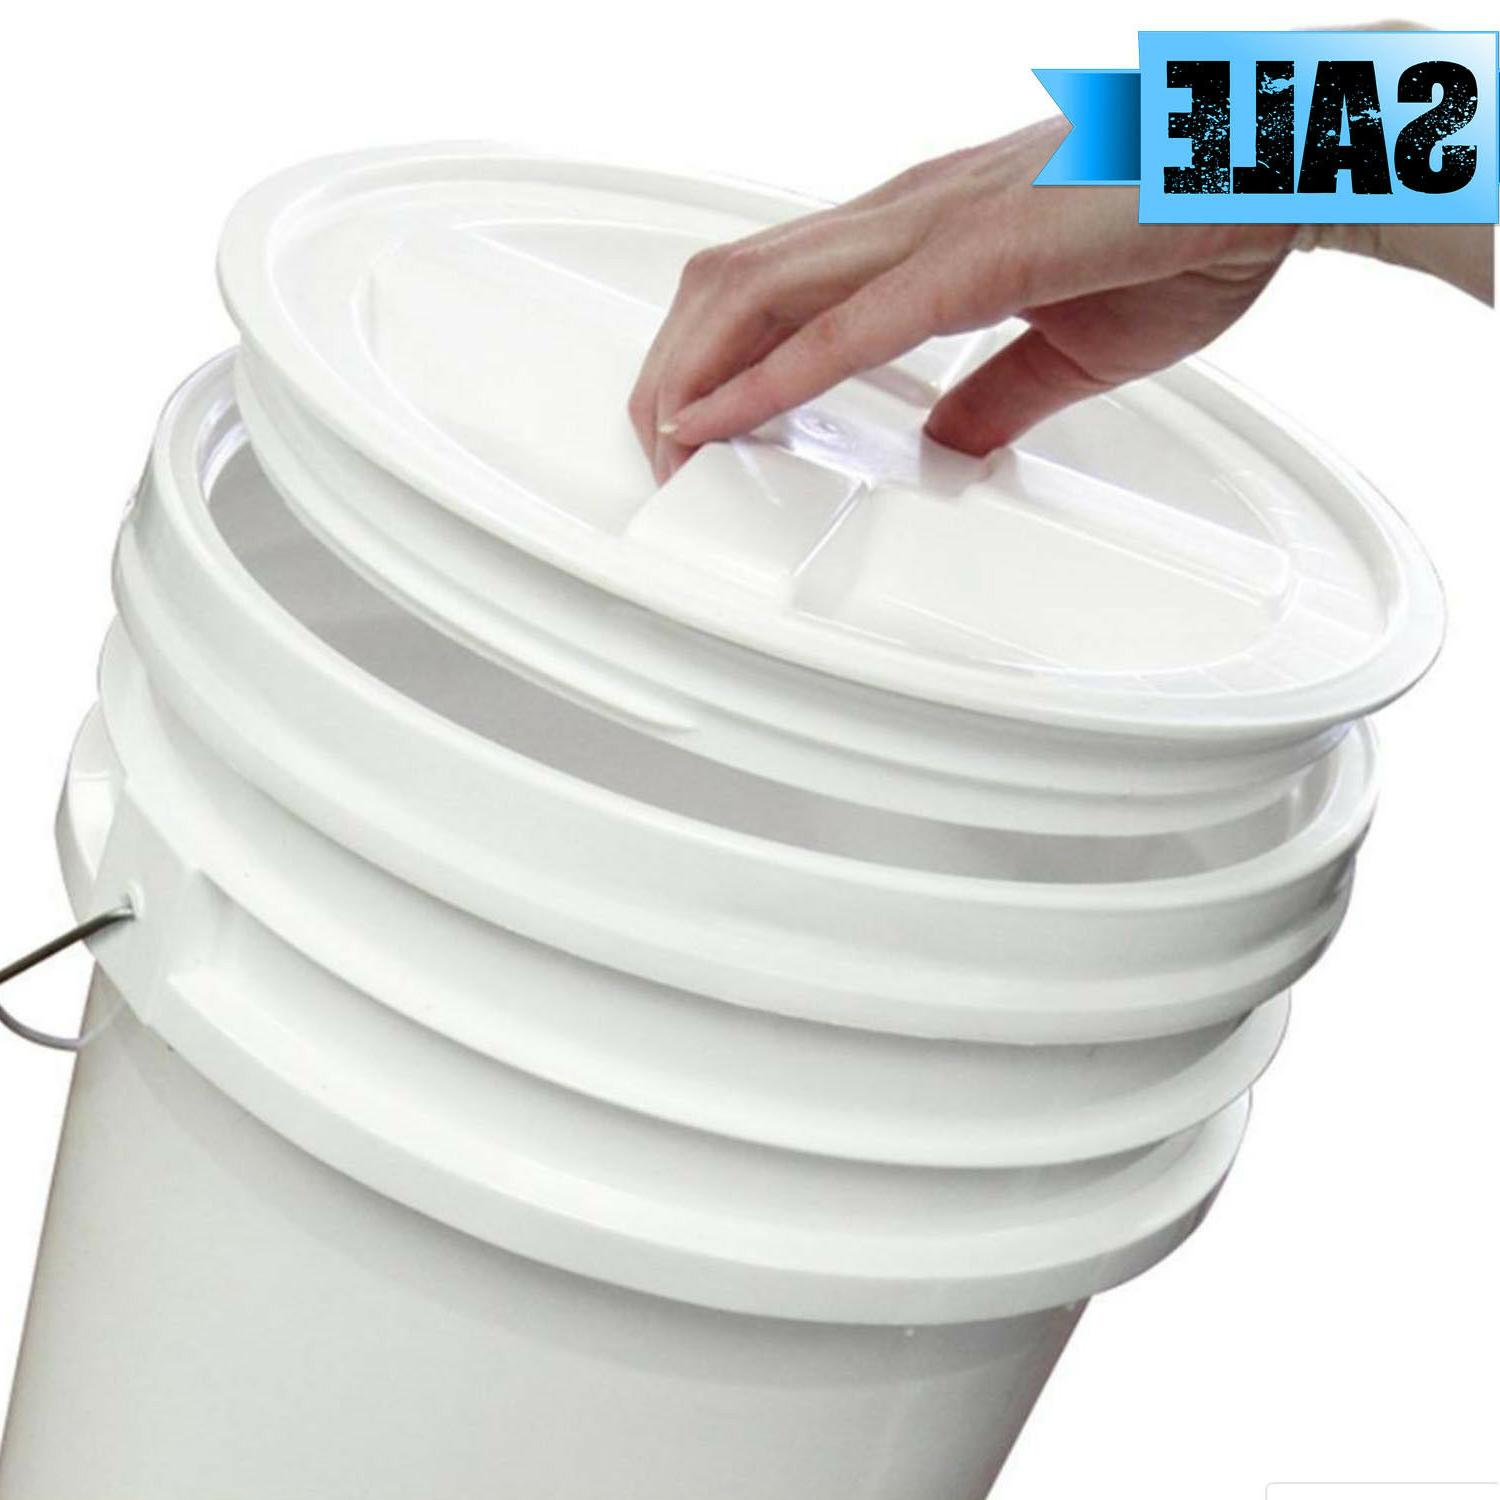 SCREW ON 5 BUCKET WATER FOOD AIRTIGHT PLASTIC GAMMA SEAL